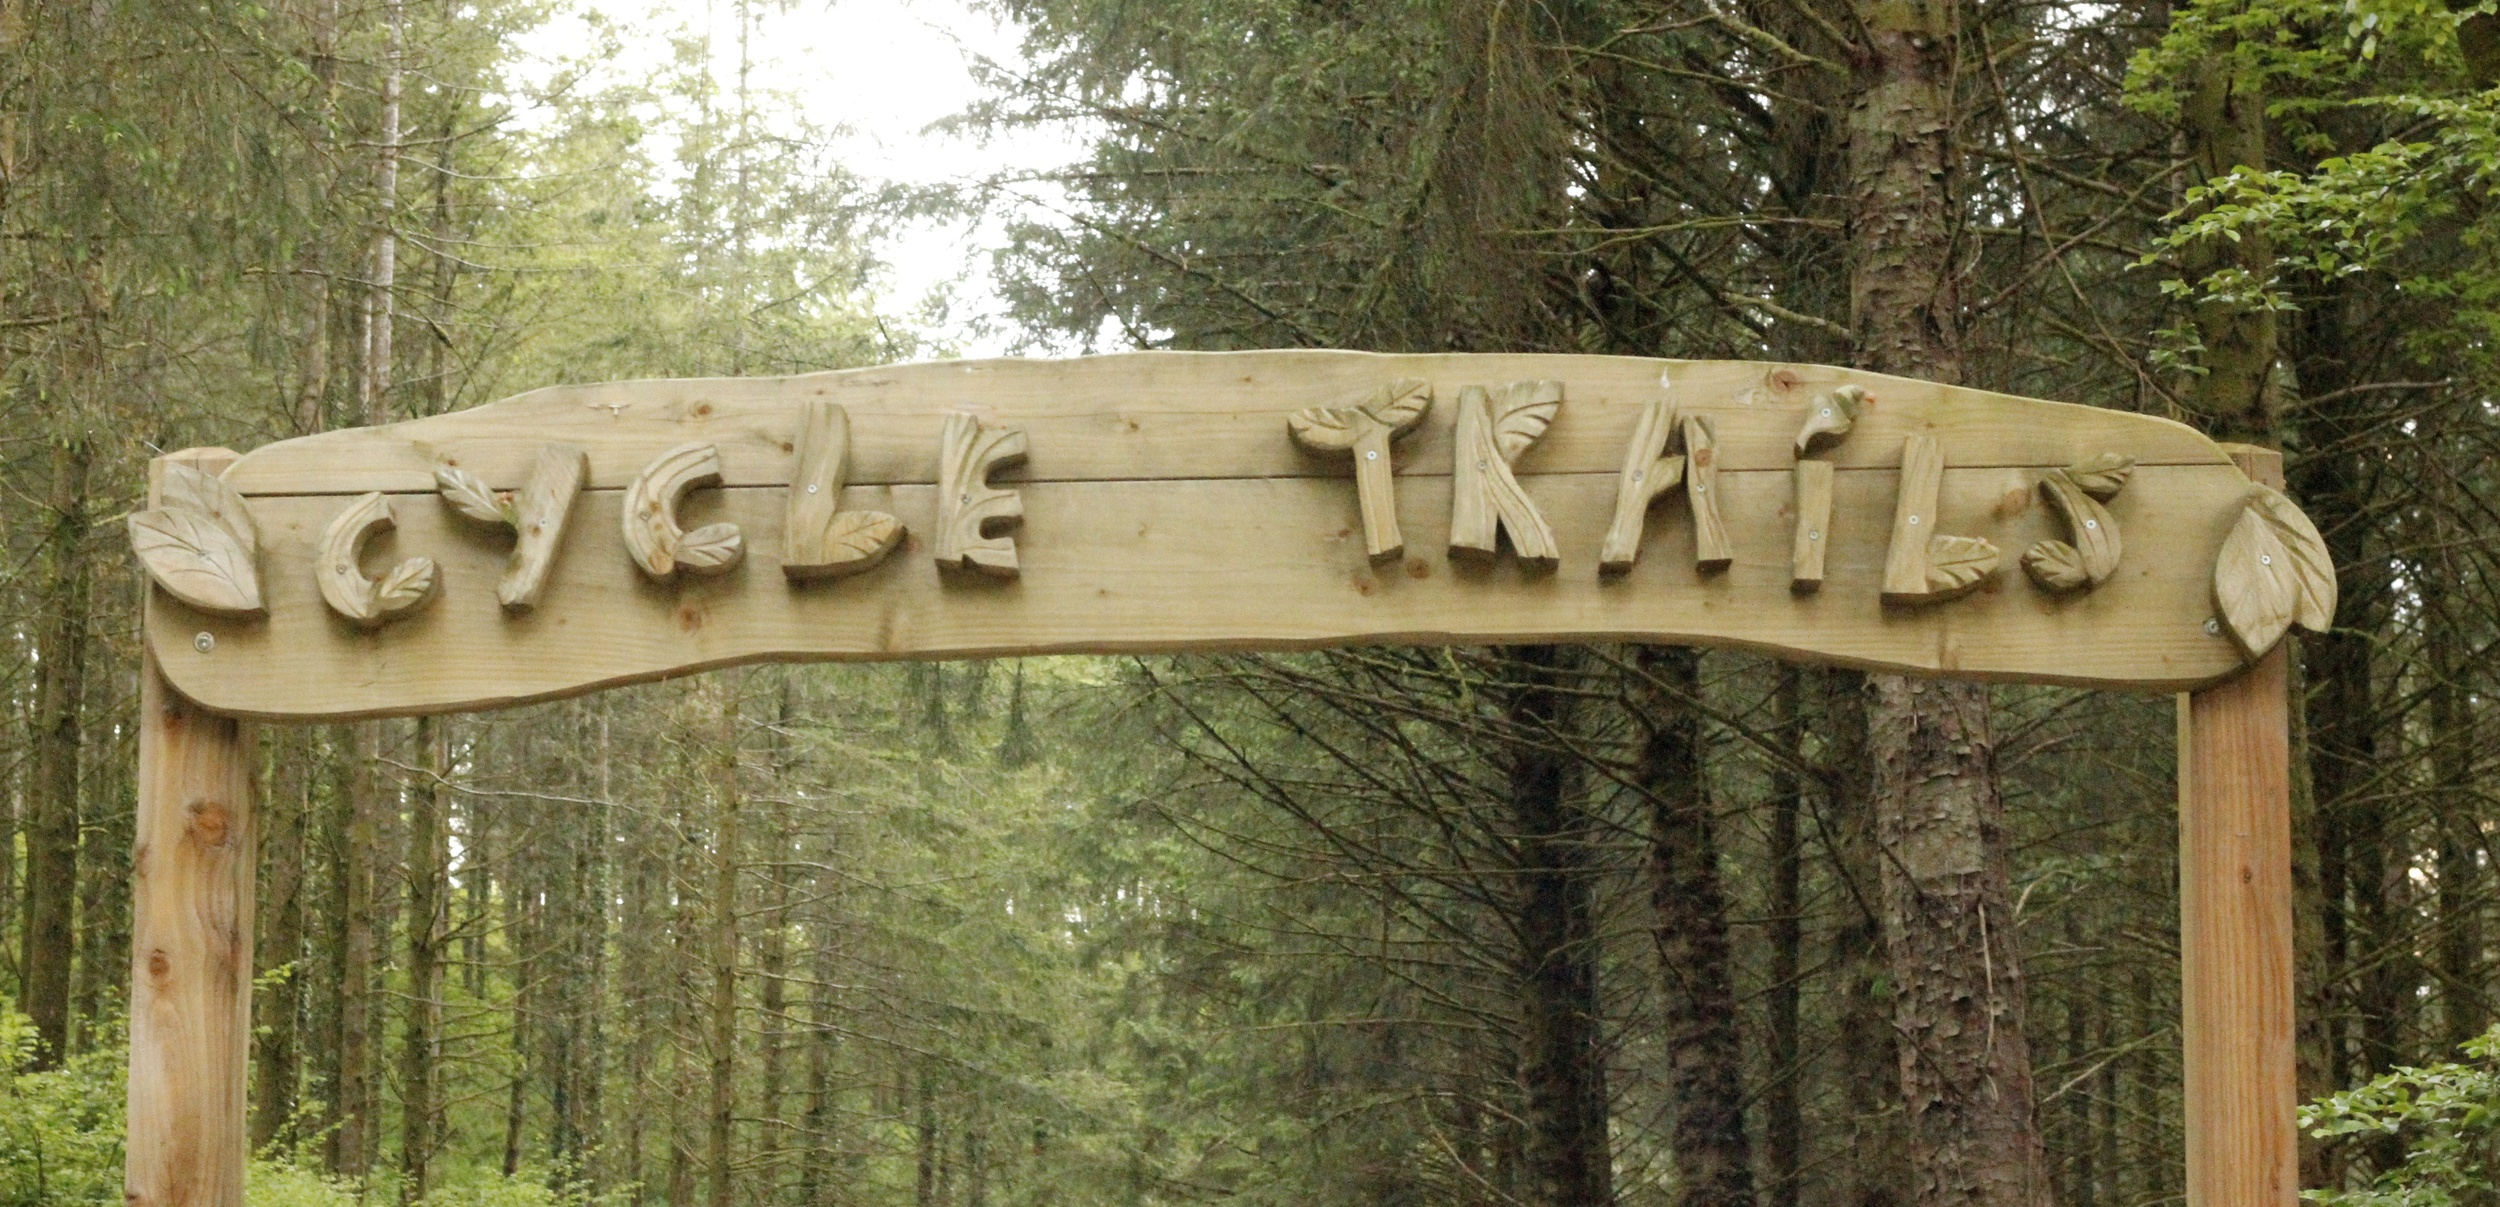 Cycle trails at Cardinham Woods